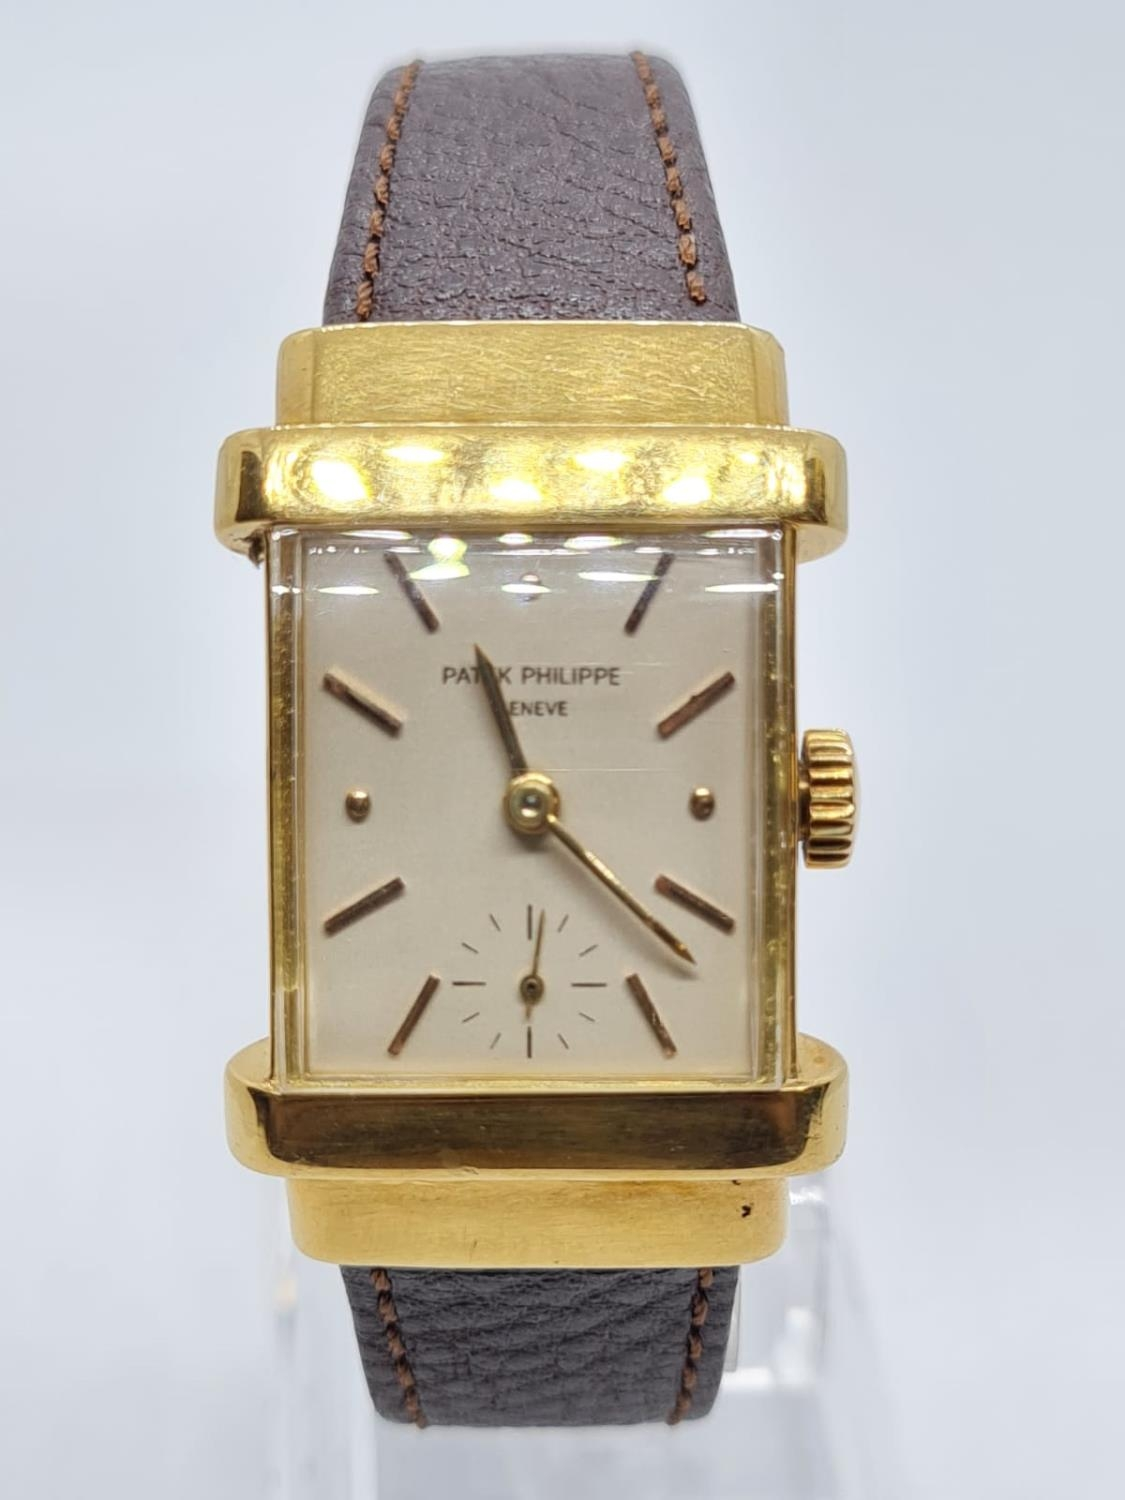 Patek Philippe Geneve WATCH tank style with rectangular face Case: 20x40mm. Brown Leather Strap.